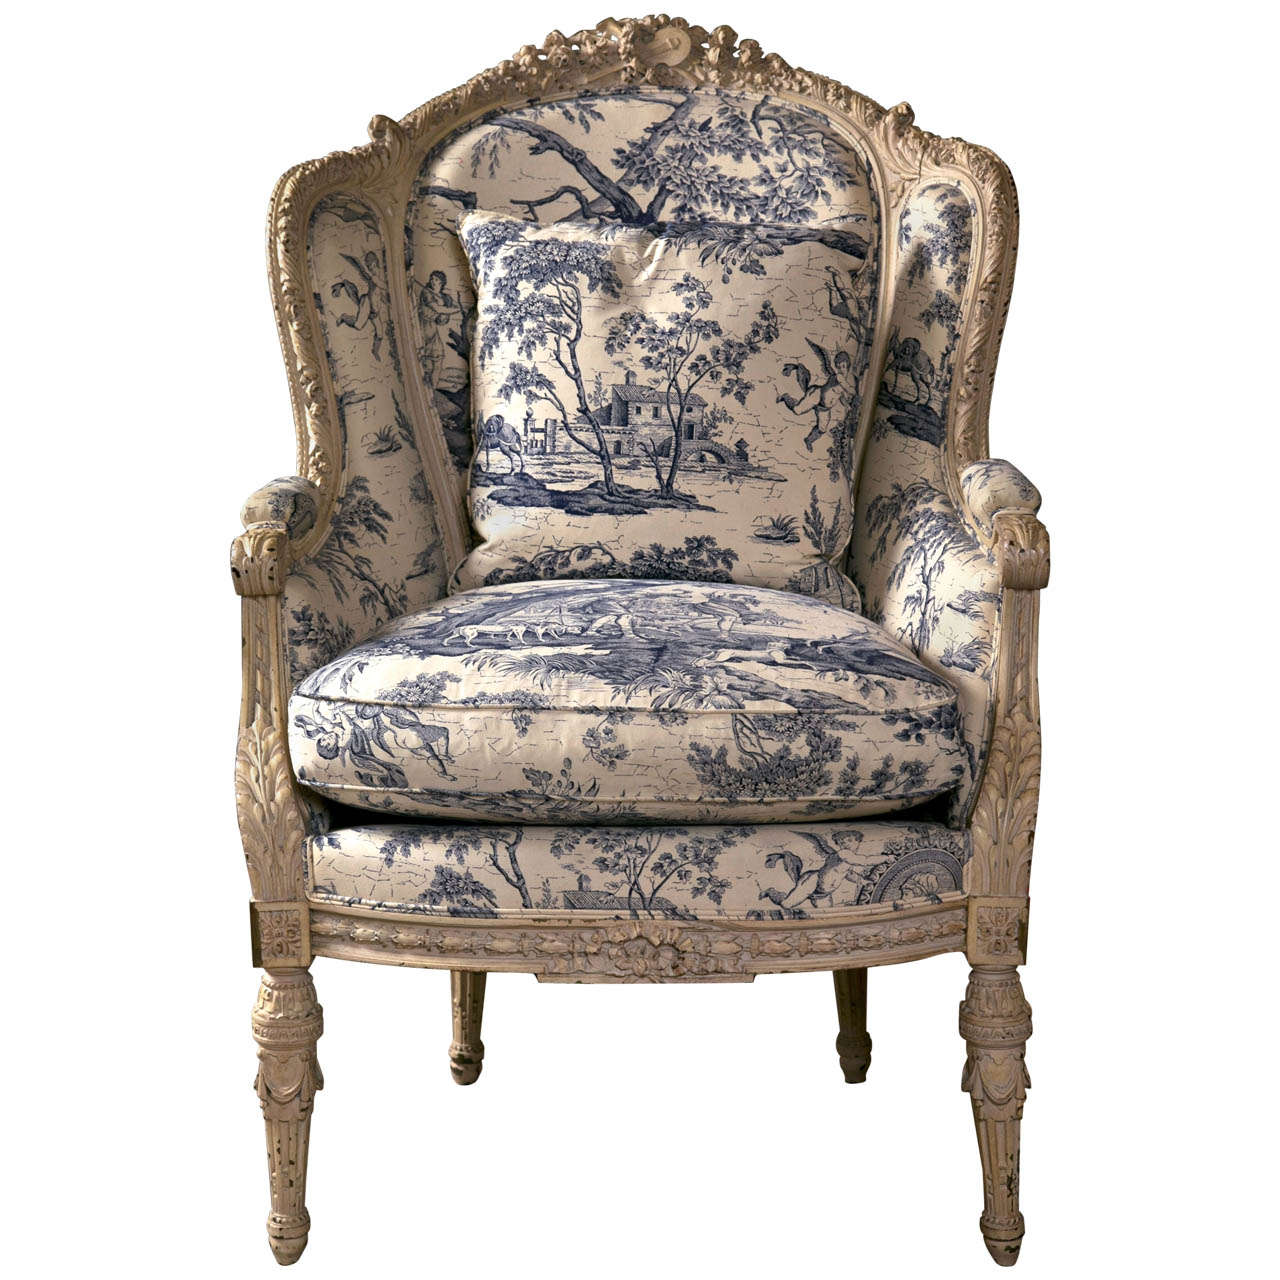 Antique bergere chair -